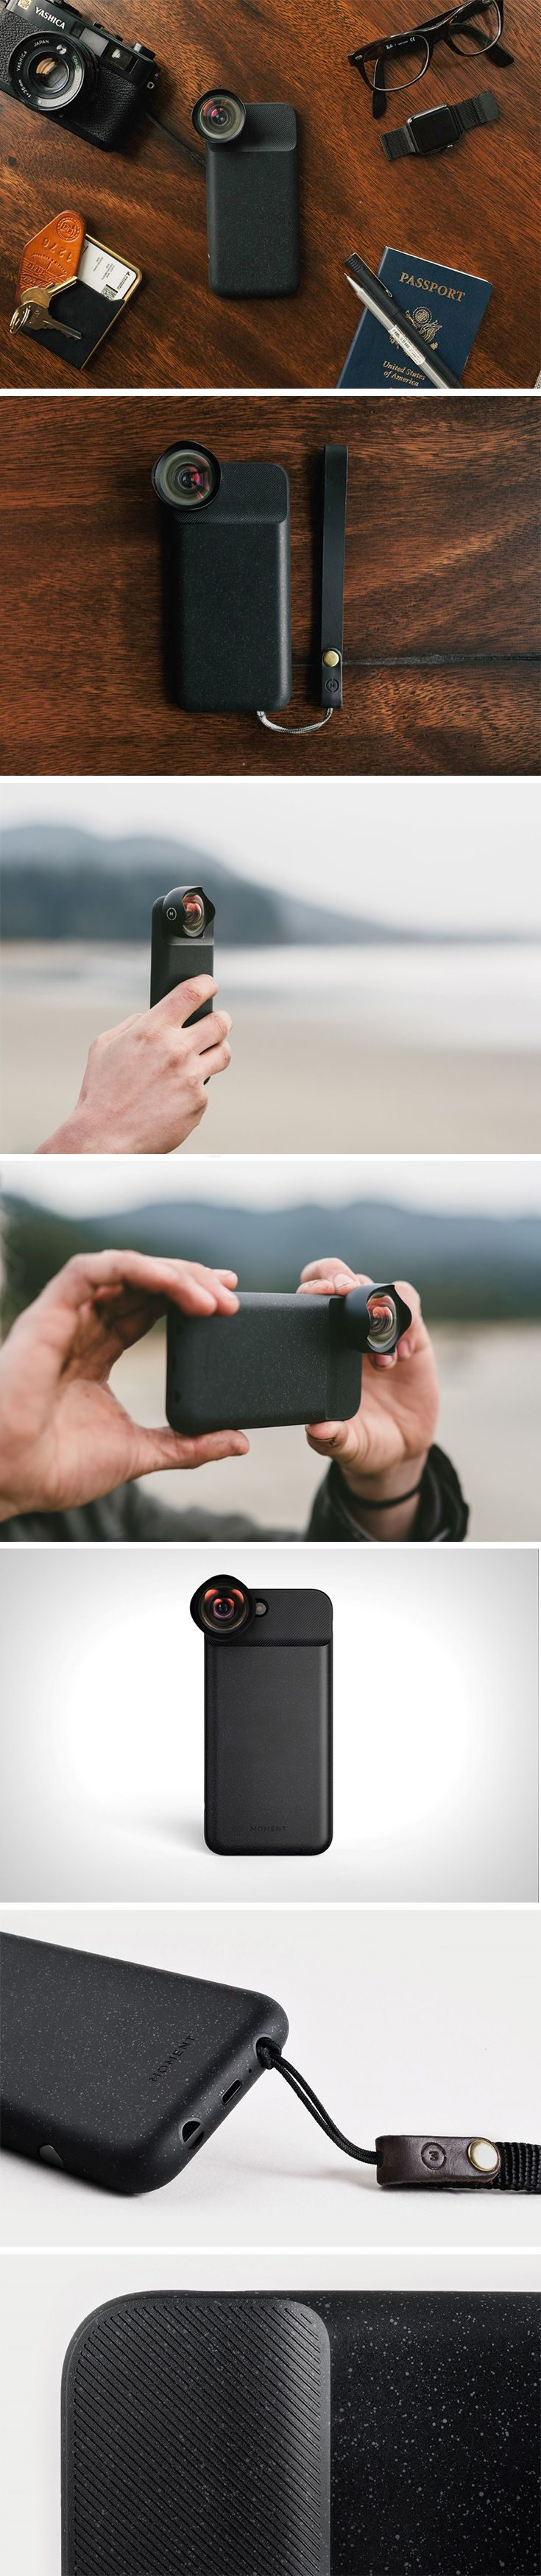 Moment's 2.0 battery case for the iPhone 7 is just perfect for the phone-photography enthusiast. It gives you serious battery chops, while also giving your phone the perfect grip for photo-taking. Moment makes some of the world's best smartphone lenses, and these snap directly onto the case.